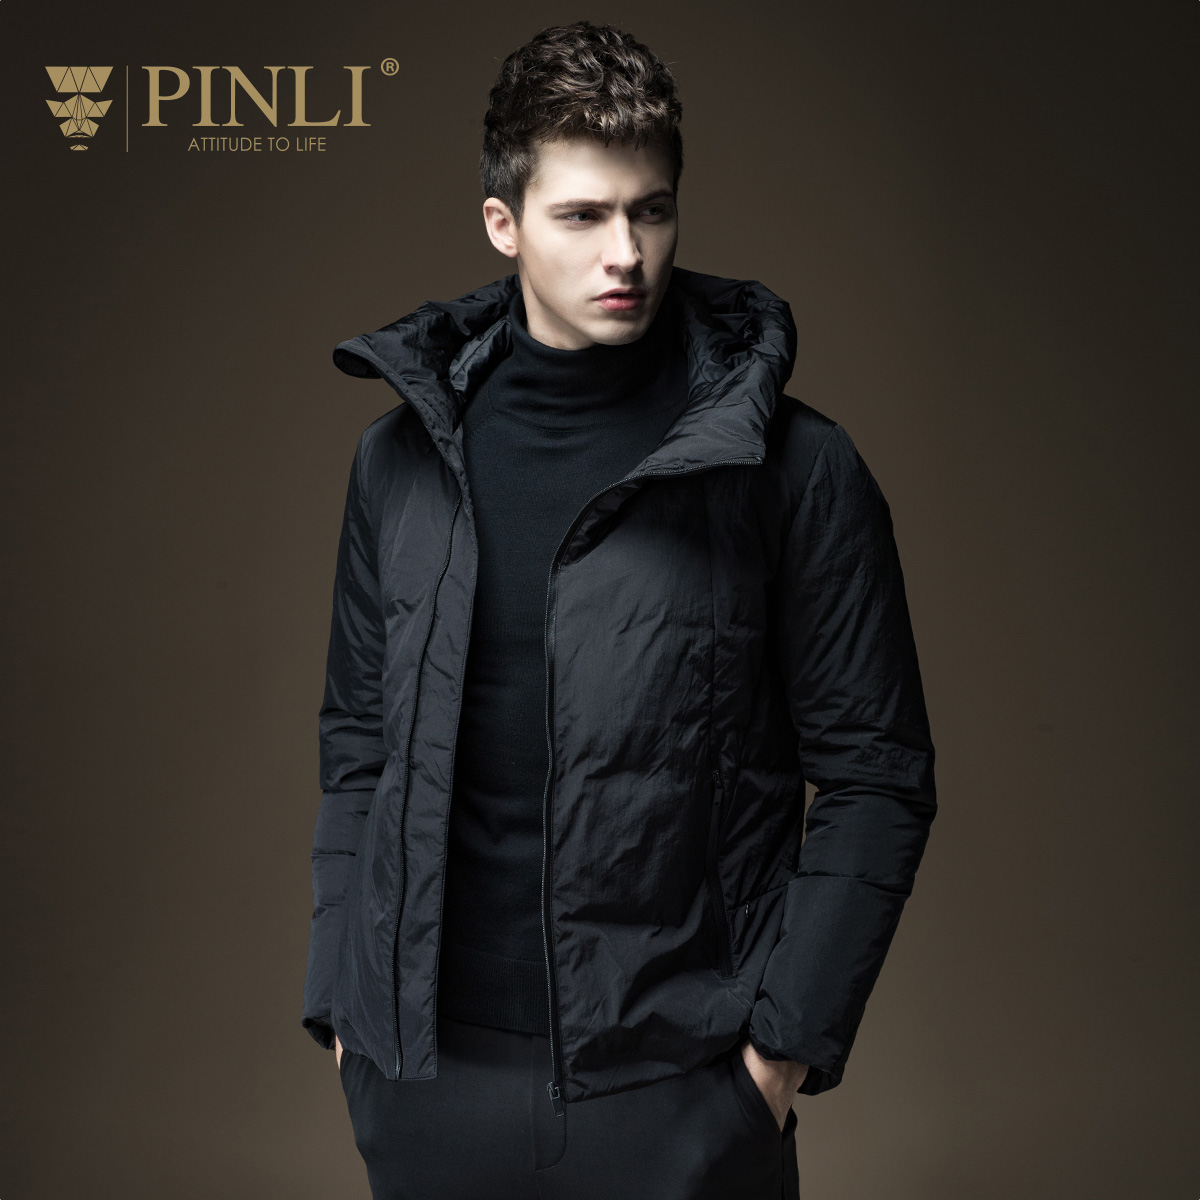 Winter Jackets Mens Special Offer Acetate Short Mandarin Collar Cotton Standard Pinli 2016 New Fall Male Jacket Warm D163508007 new mens colors short sleeve cotton tshirt henry kissinger quote absence